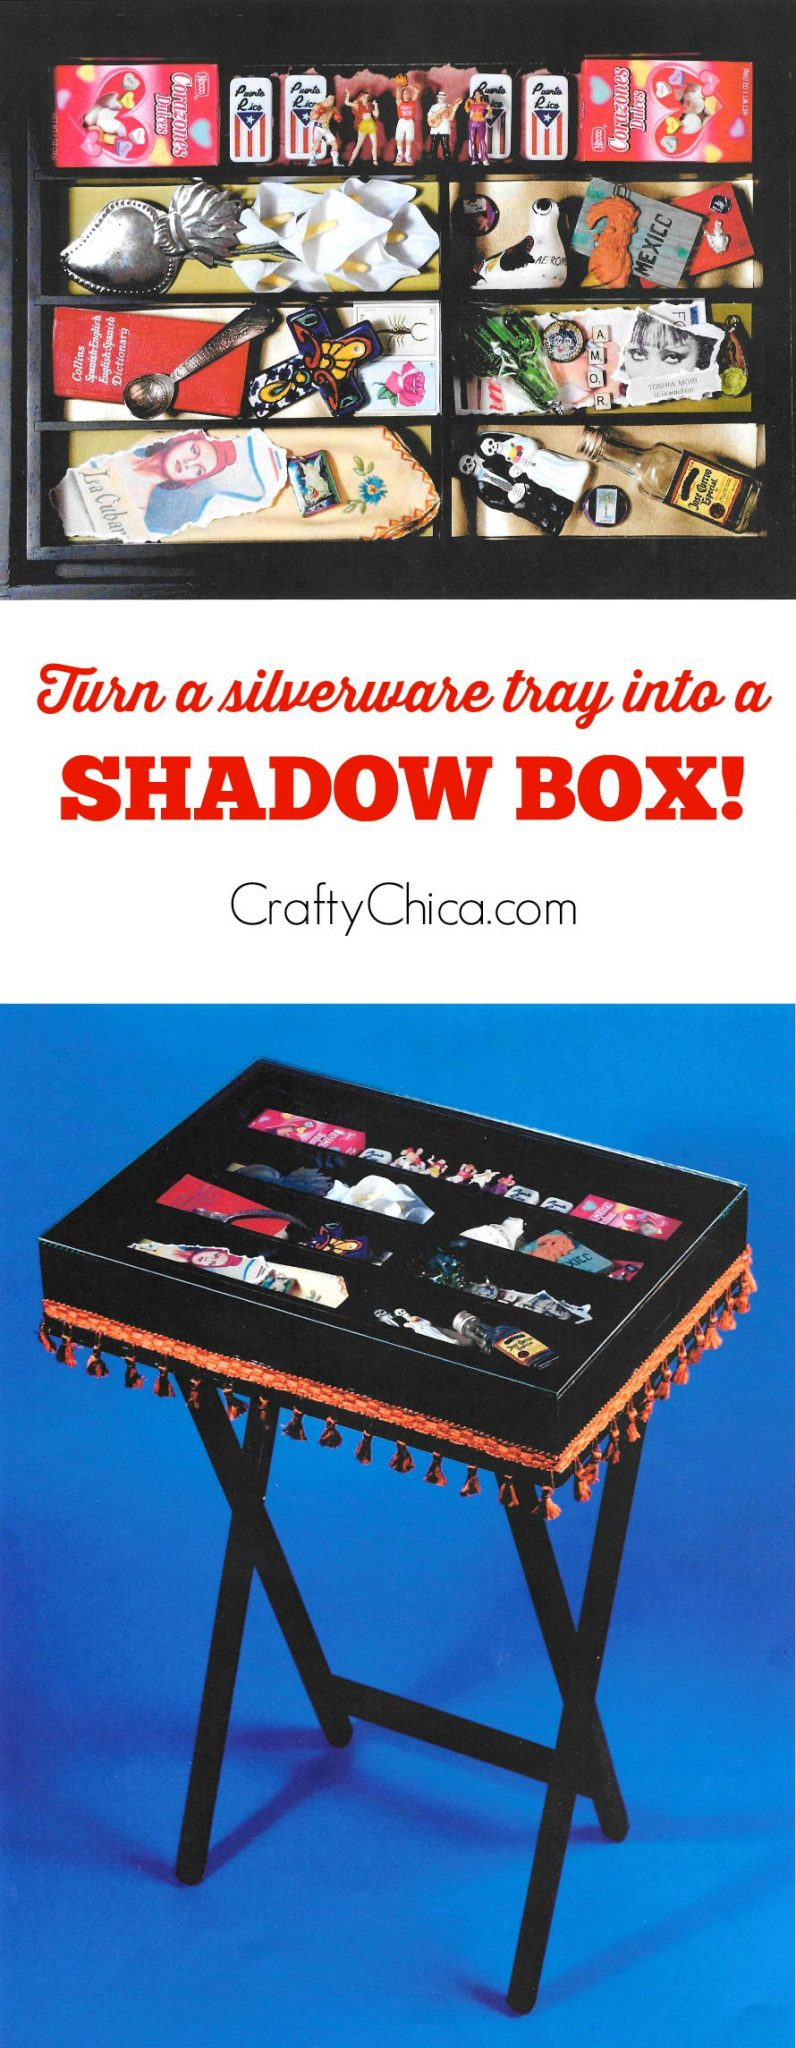 How to make a showbox table from a silverware tray by CraftyChica.com.